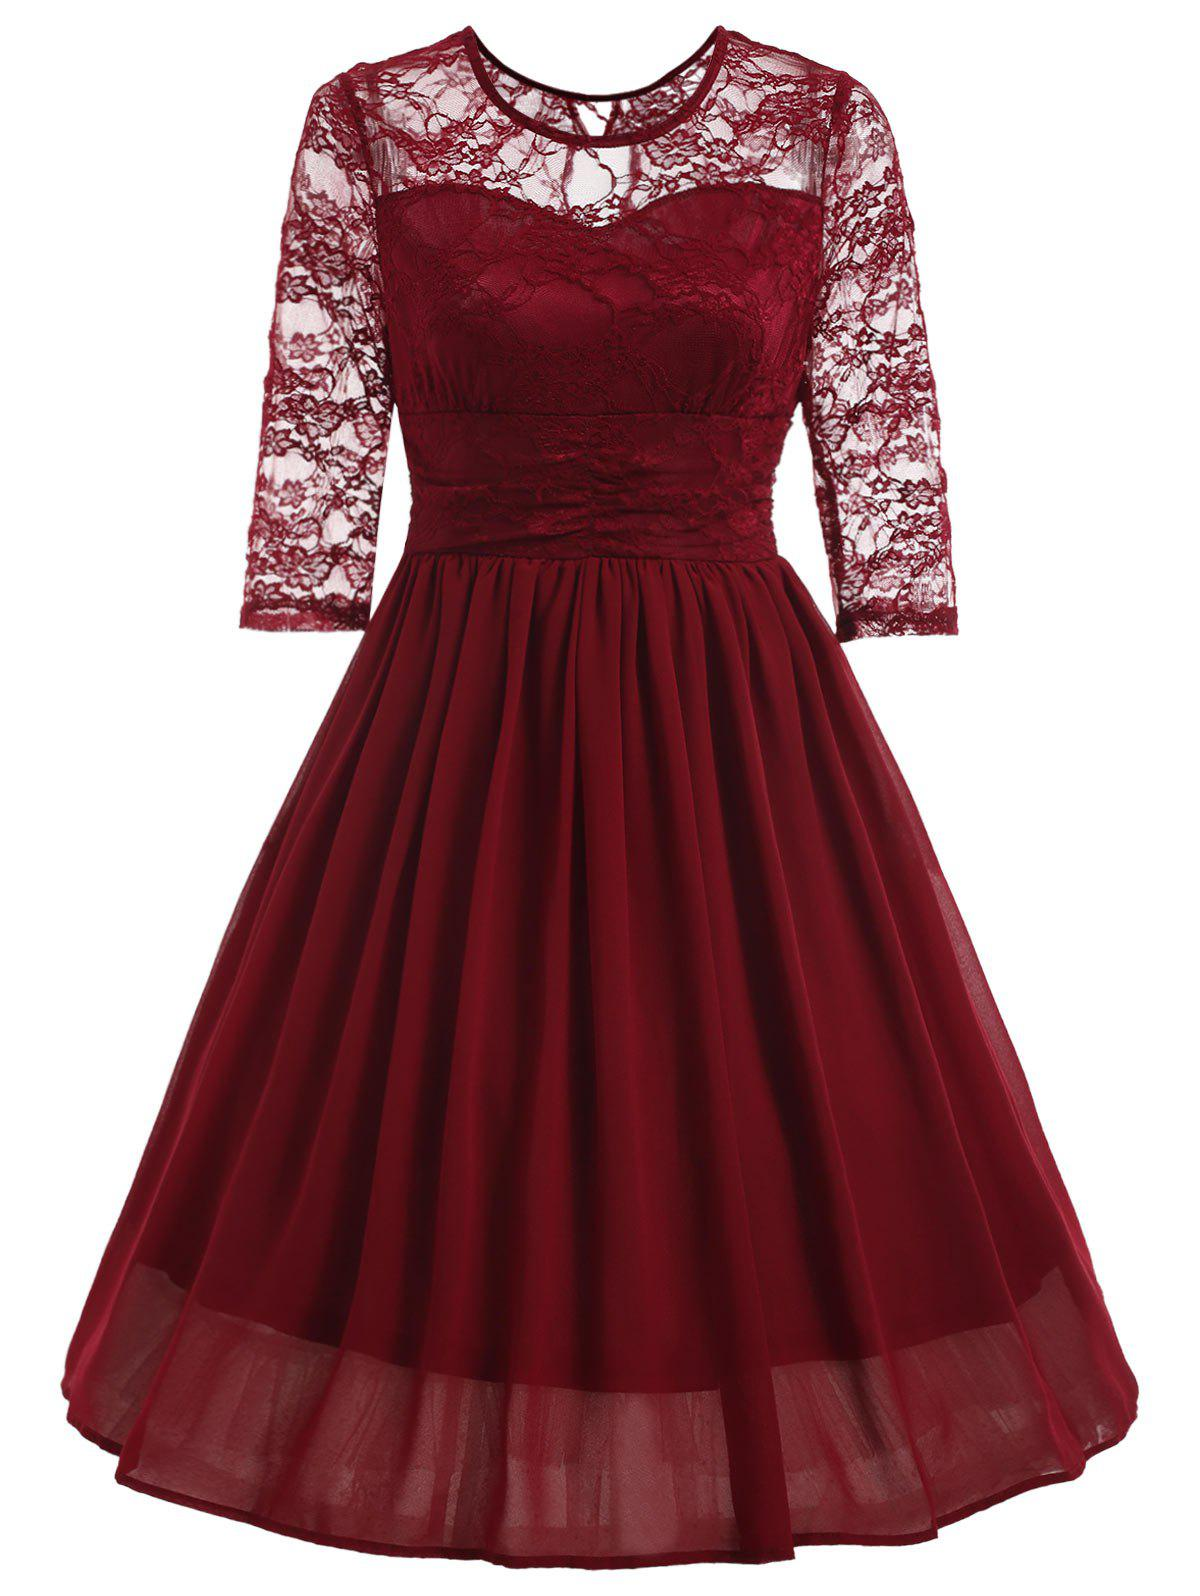 Vintage Lace Insert Fit and Flare Dress lace overlay fit and flare dress